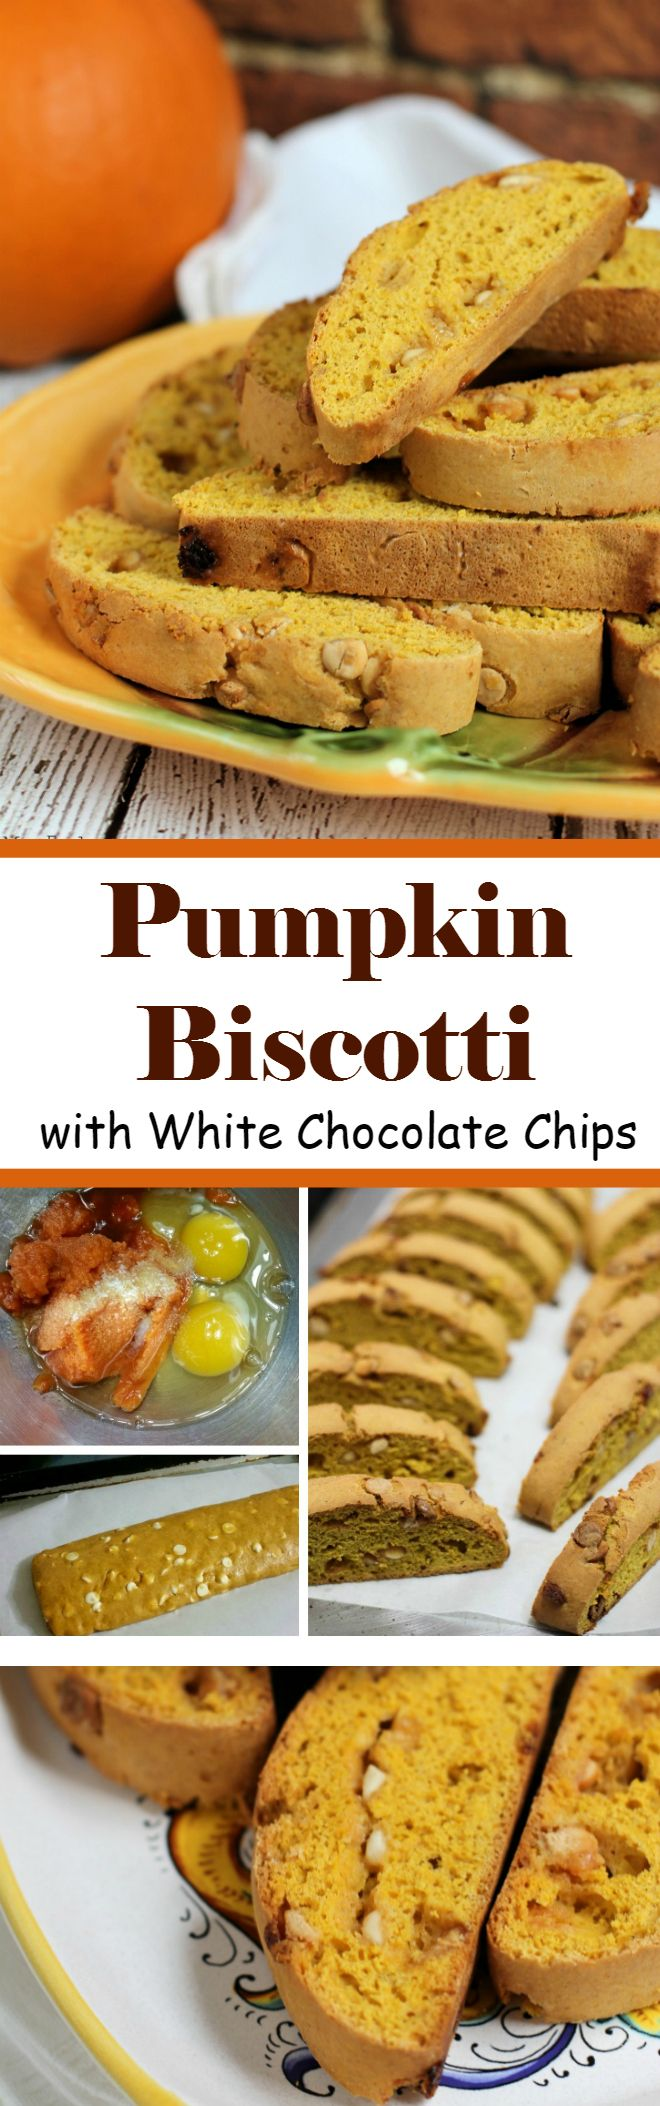 Pumpkin Biscotti with White Chocolate Chips